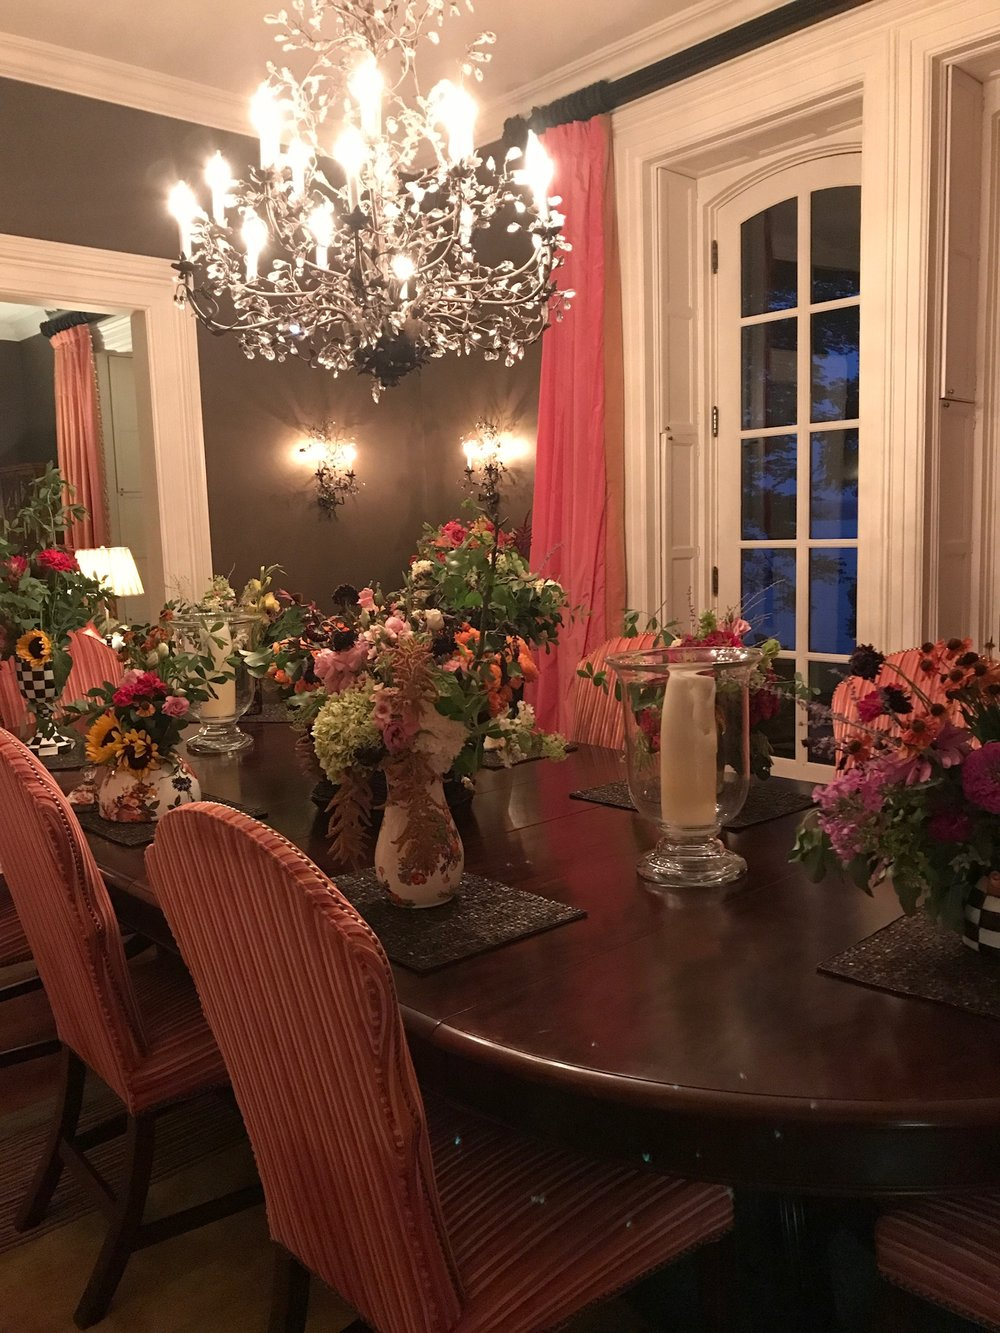 All of our arrangements took rest in the dining room at the E.B. Morgan House - not too shabby if I say so!